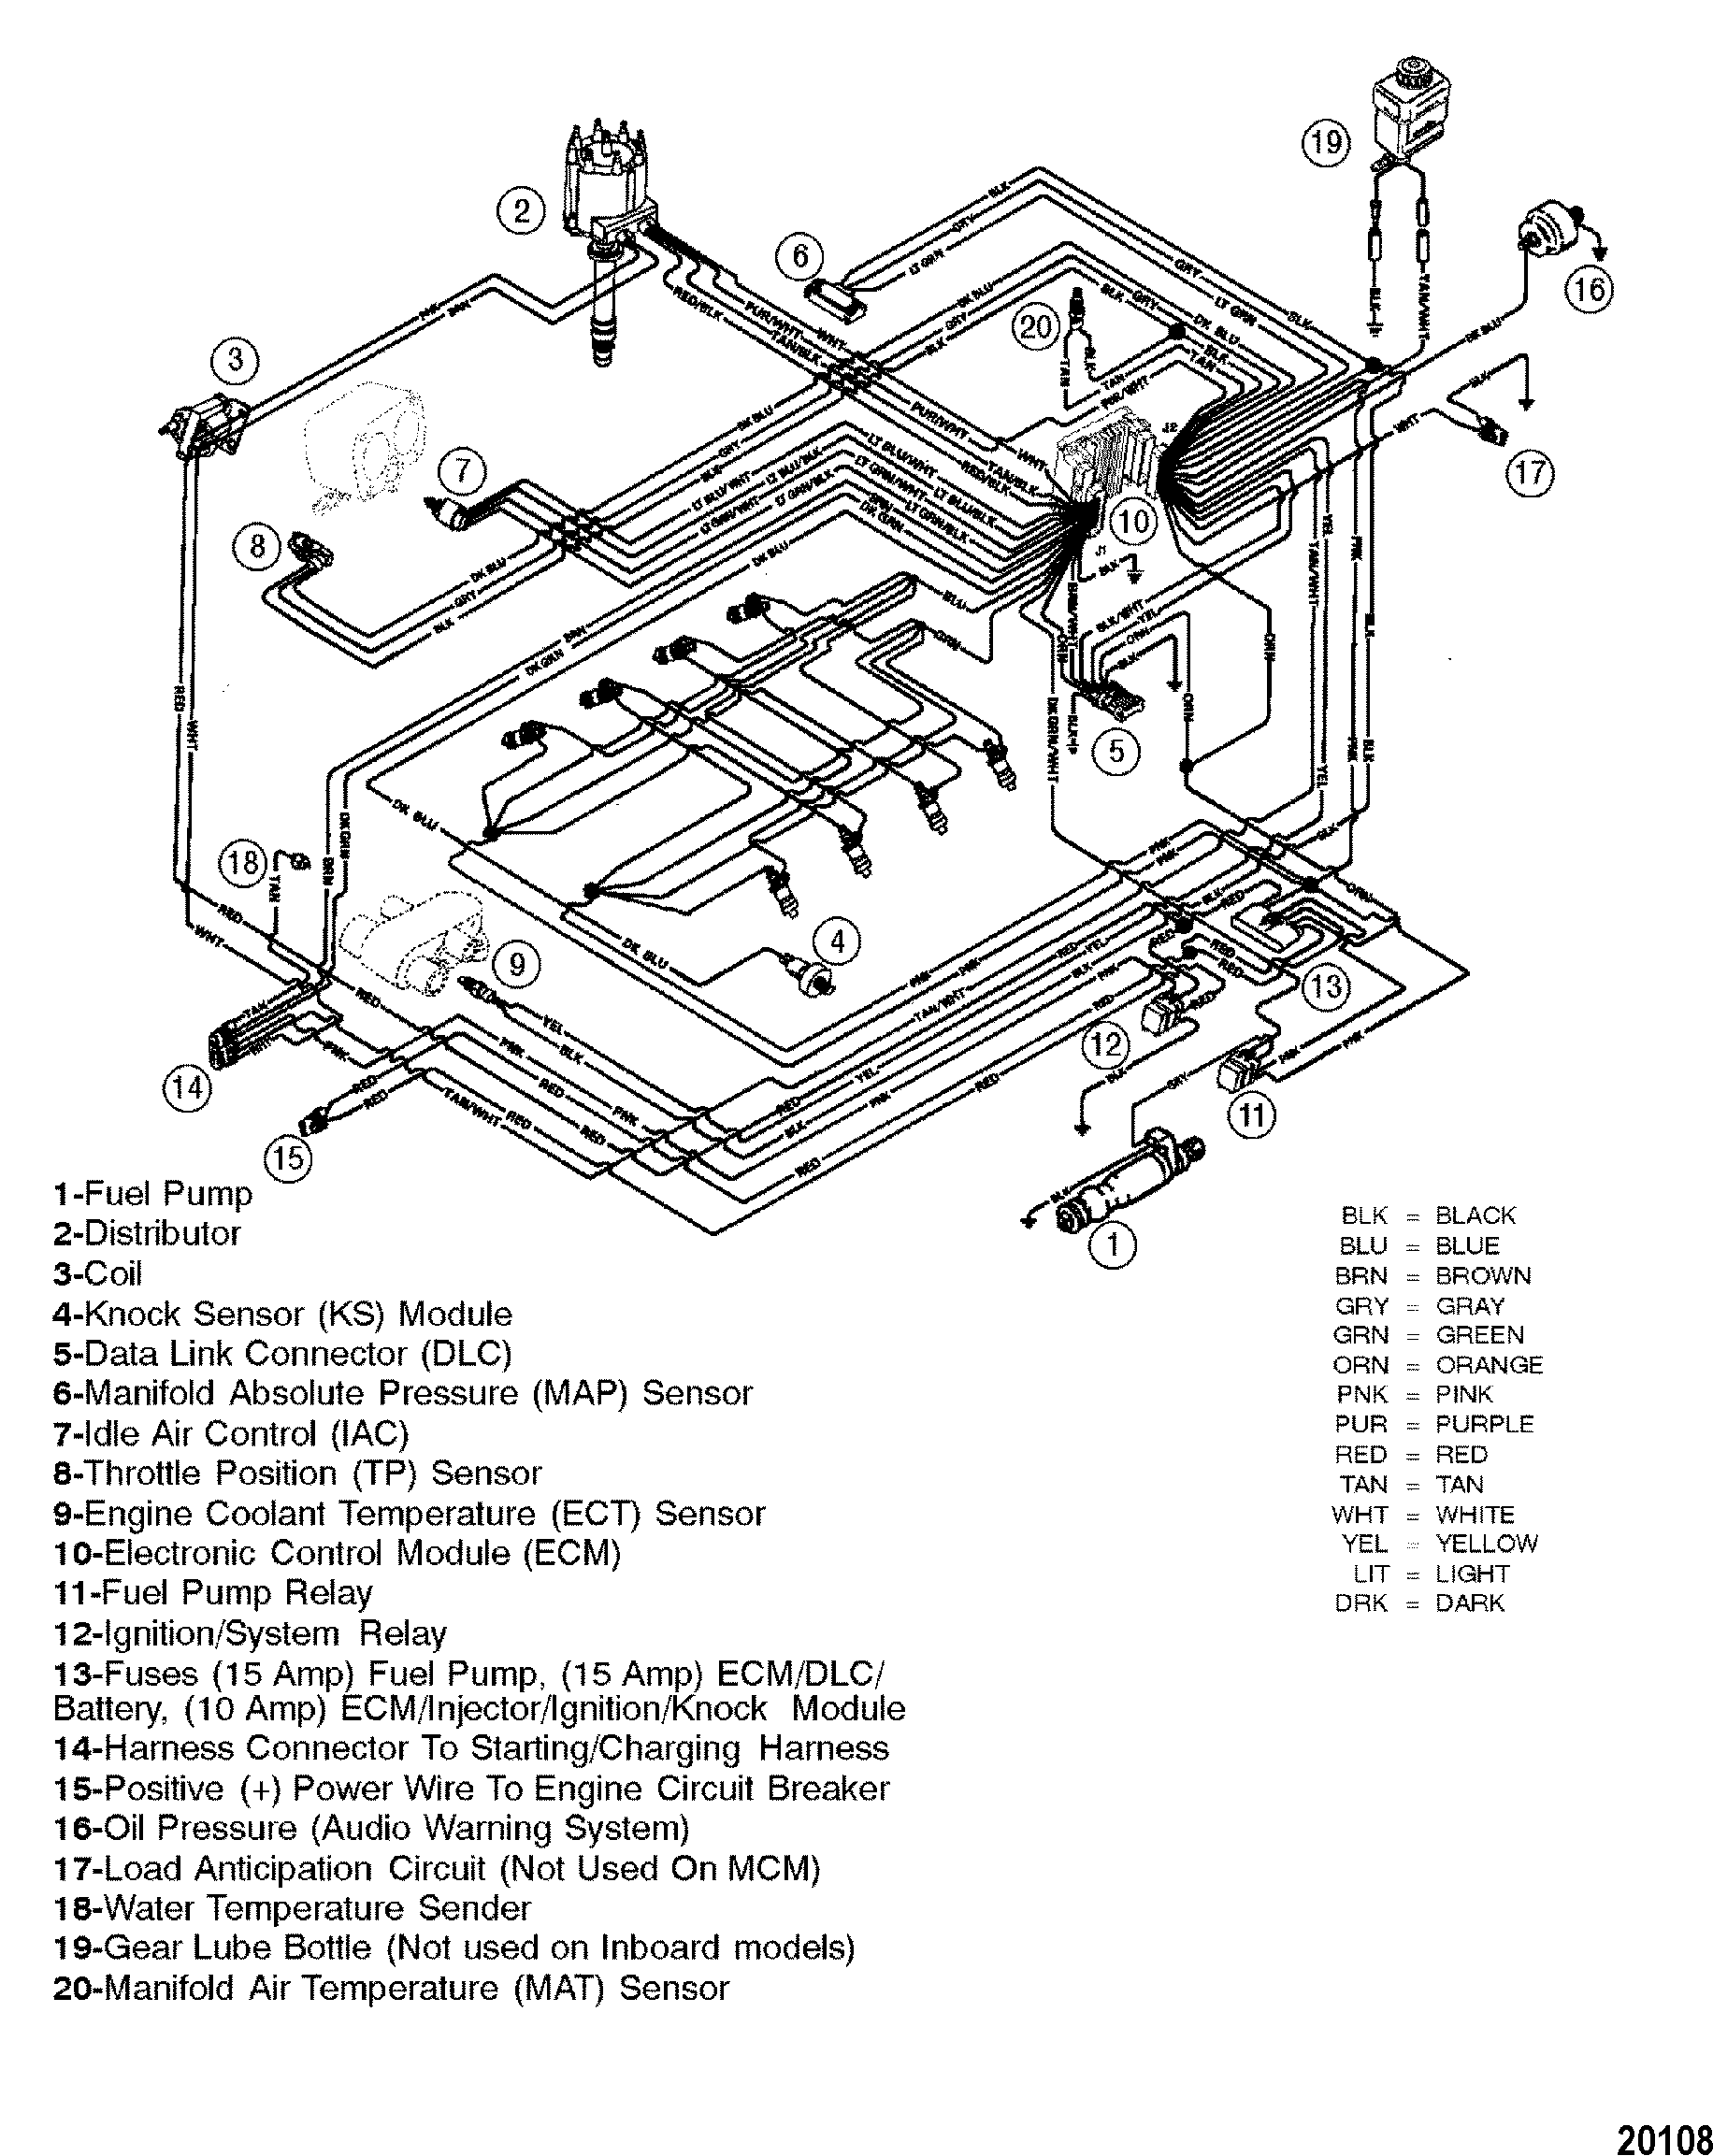 hight resolution of 5 7 mercruiser engine wiring diagram wiring diagram inside mercruiser 5 0 mpi engine diagram mercruiser 5